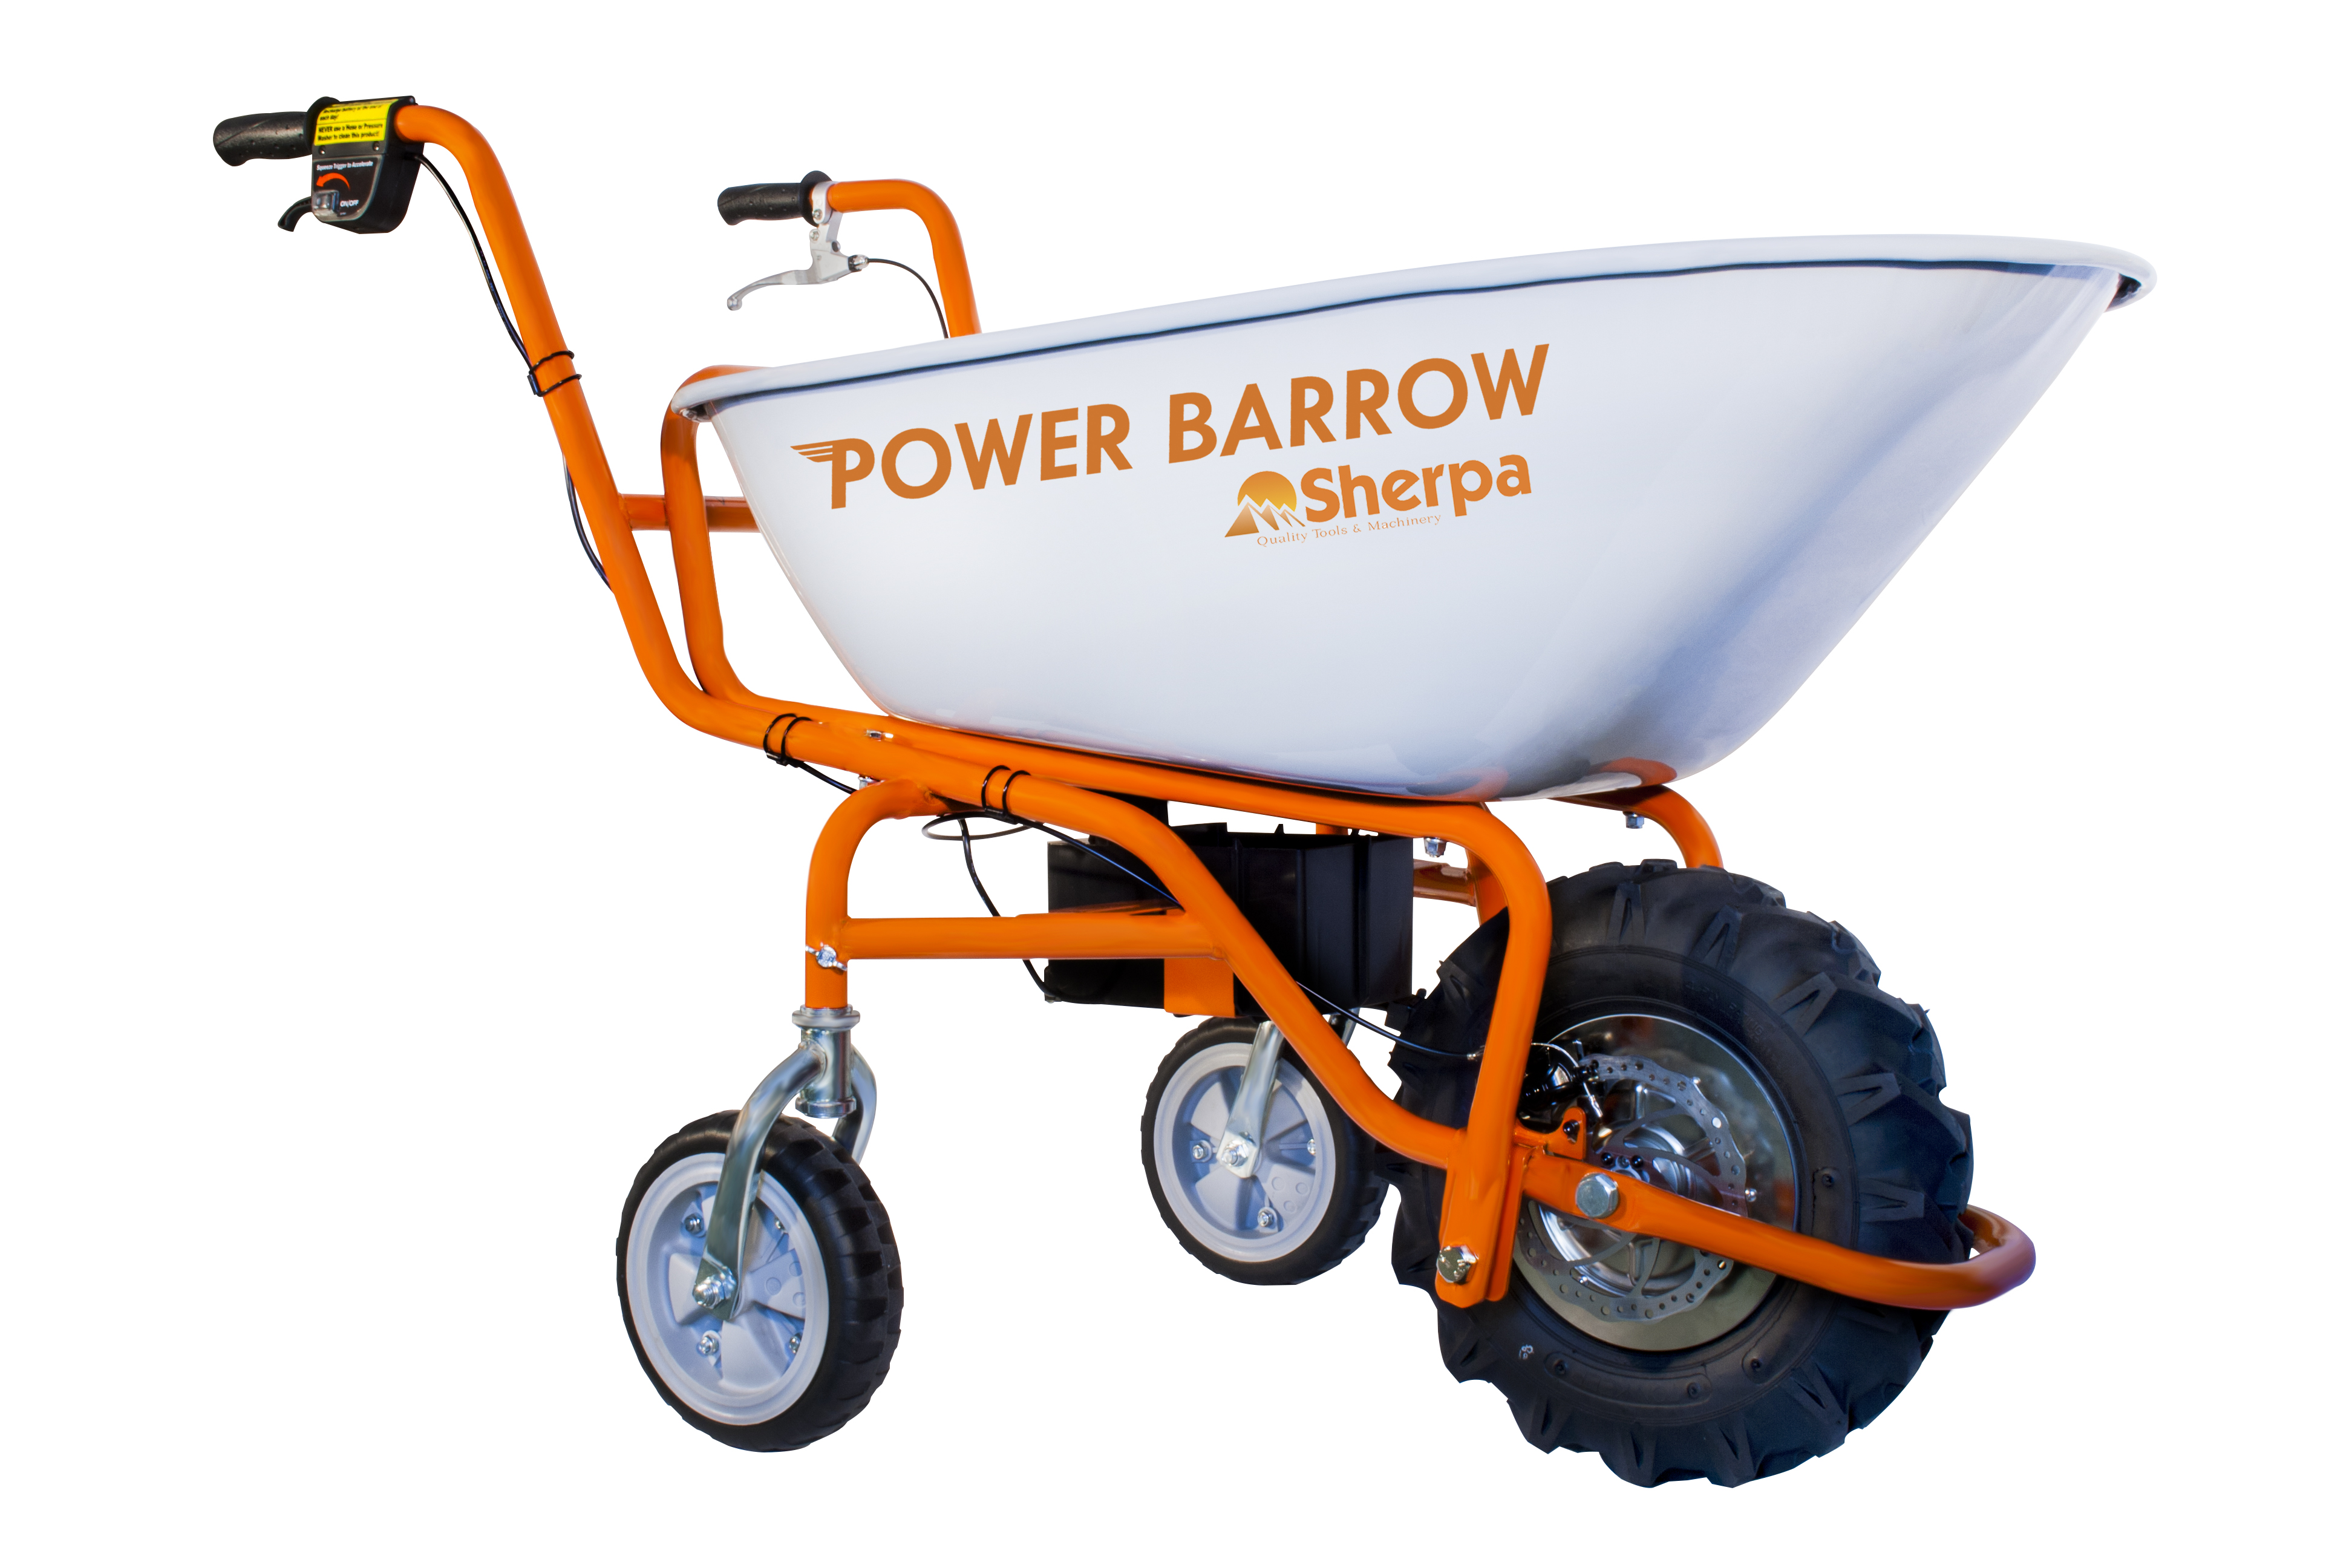 Self Propelled Cart >> Sherpa Power Barrow | Combi Marketing Ltd - Authorised ...